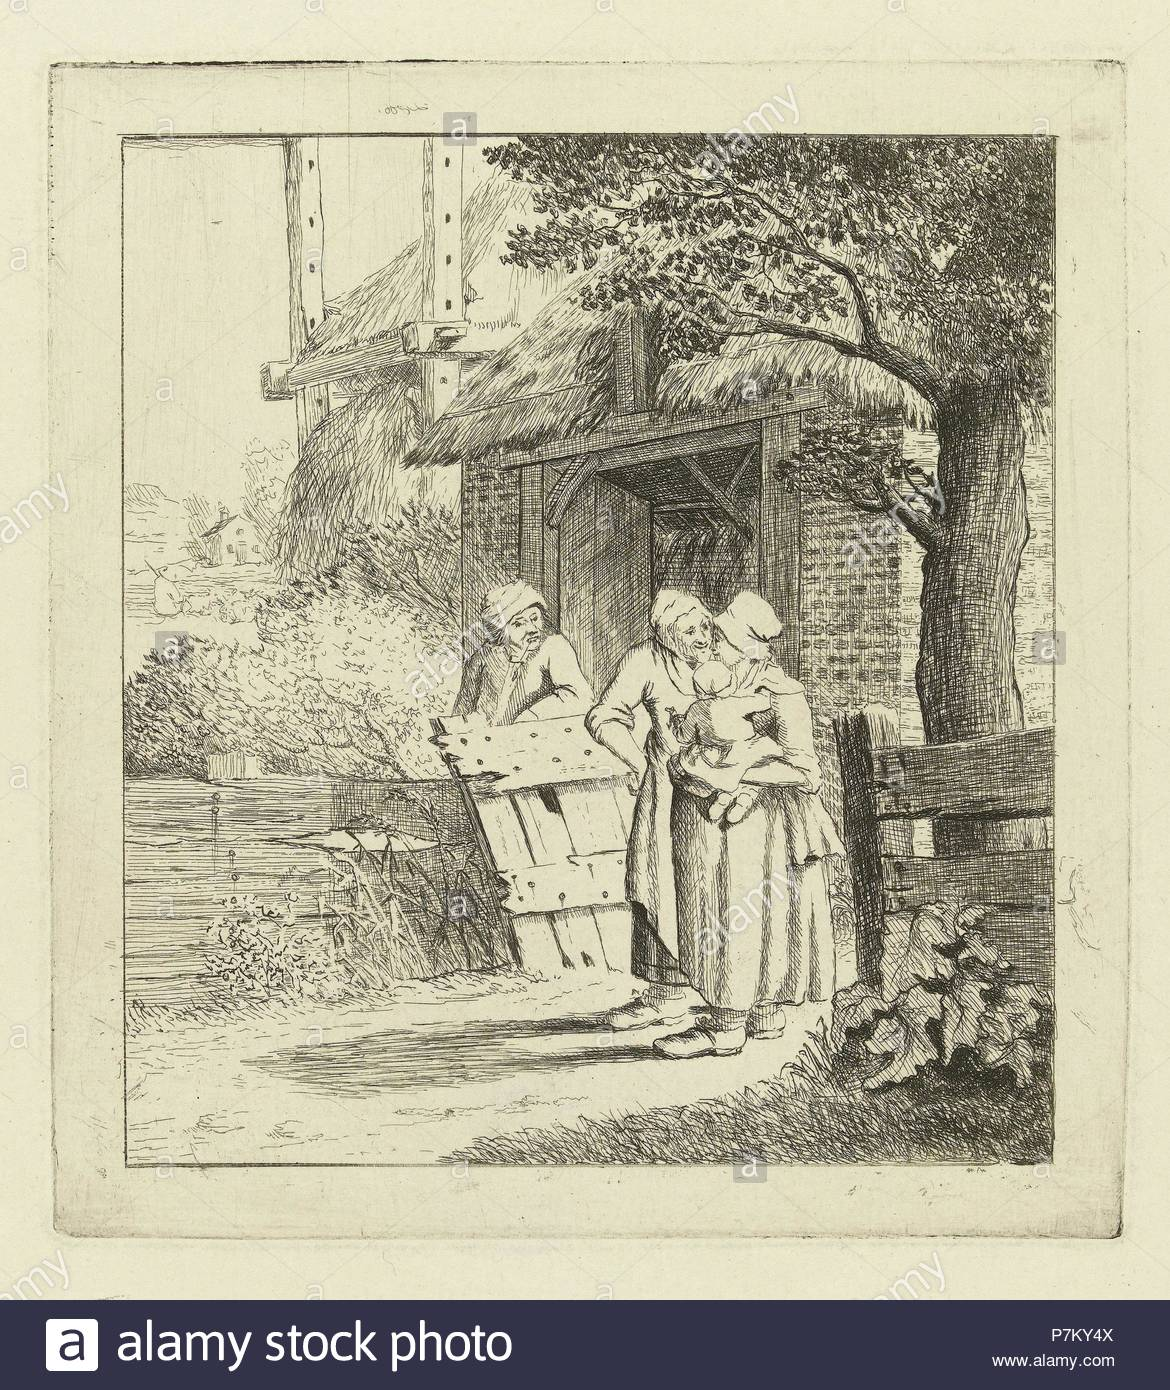 Two women and a man on a farm, Marie Lambertine Coclers, c. 1776 - c. 1815. - Stock Image